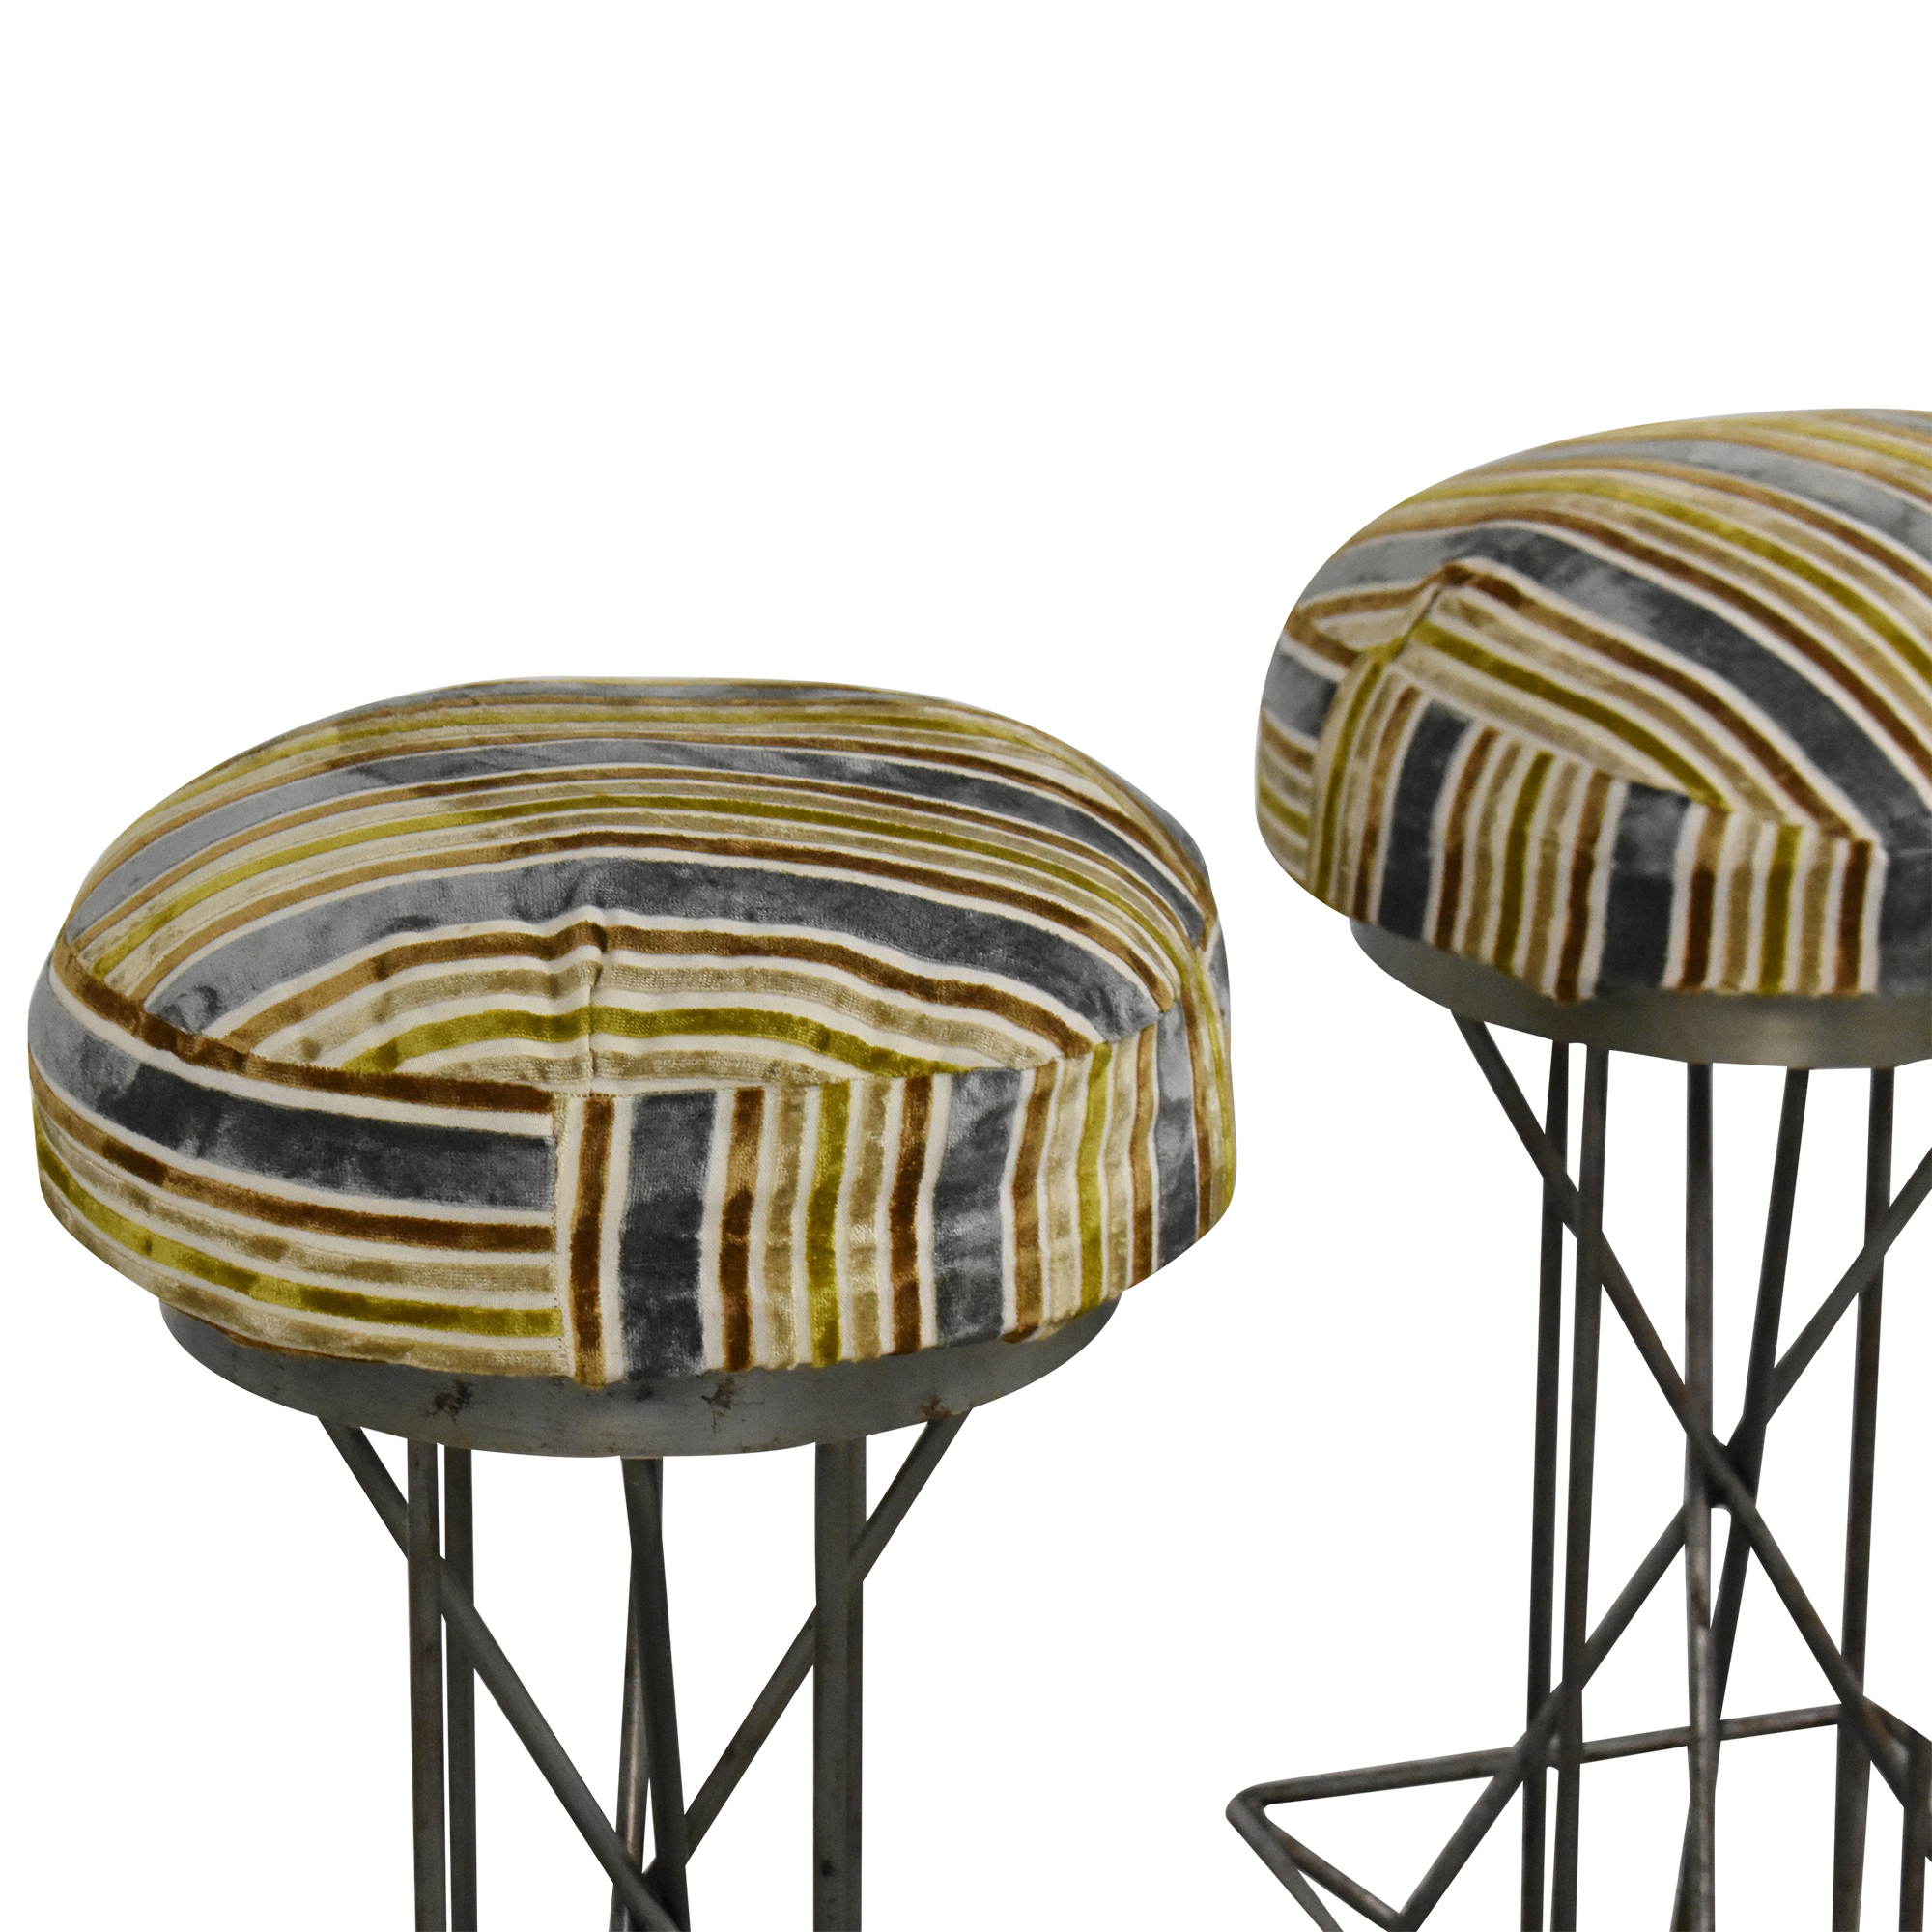 Vintage-Style Bar Stools / Chairs